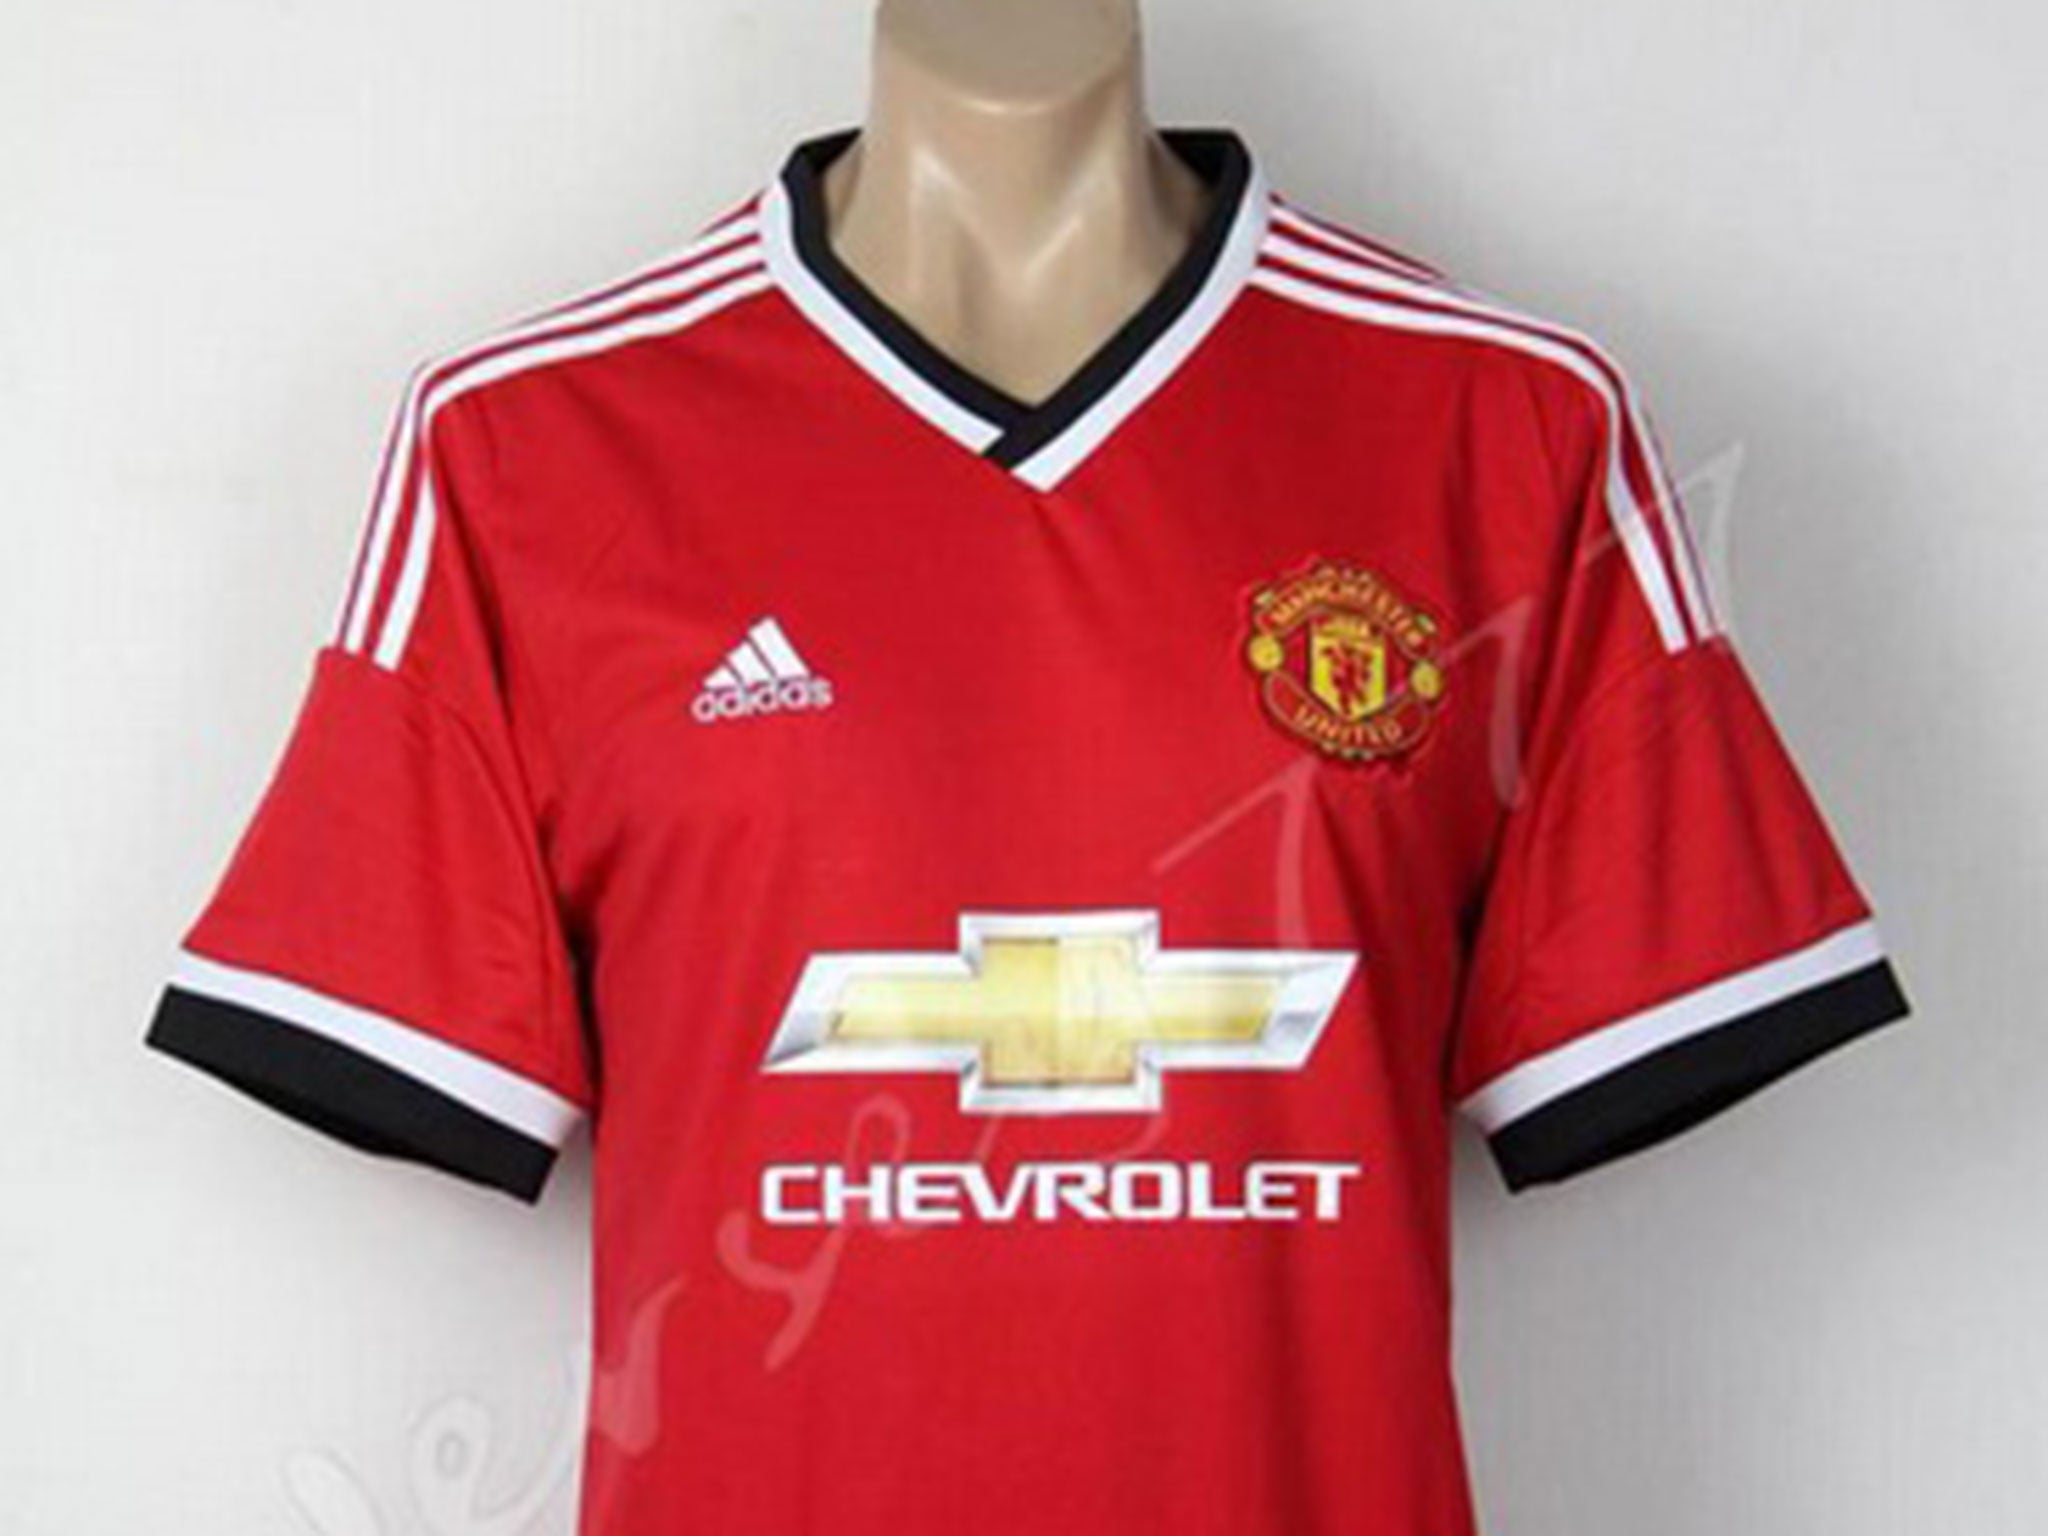 New manchester united shirt leaked celebrity